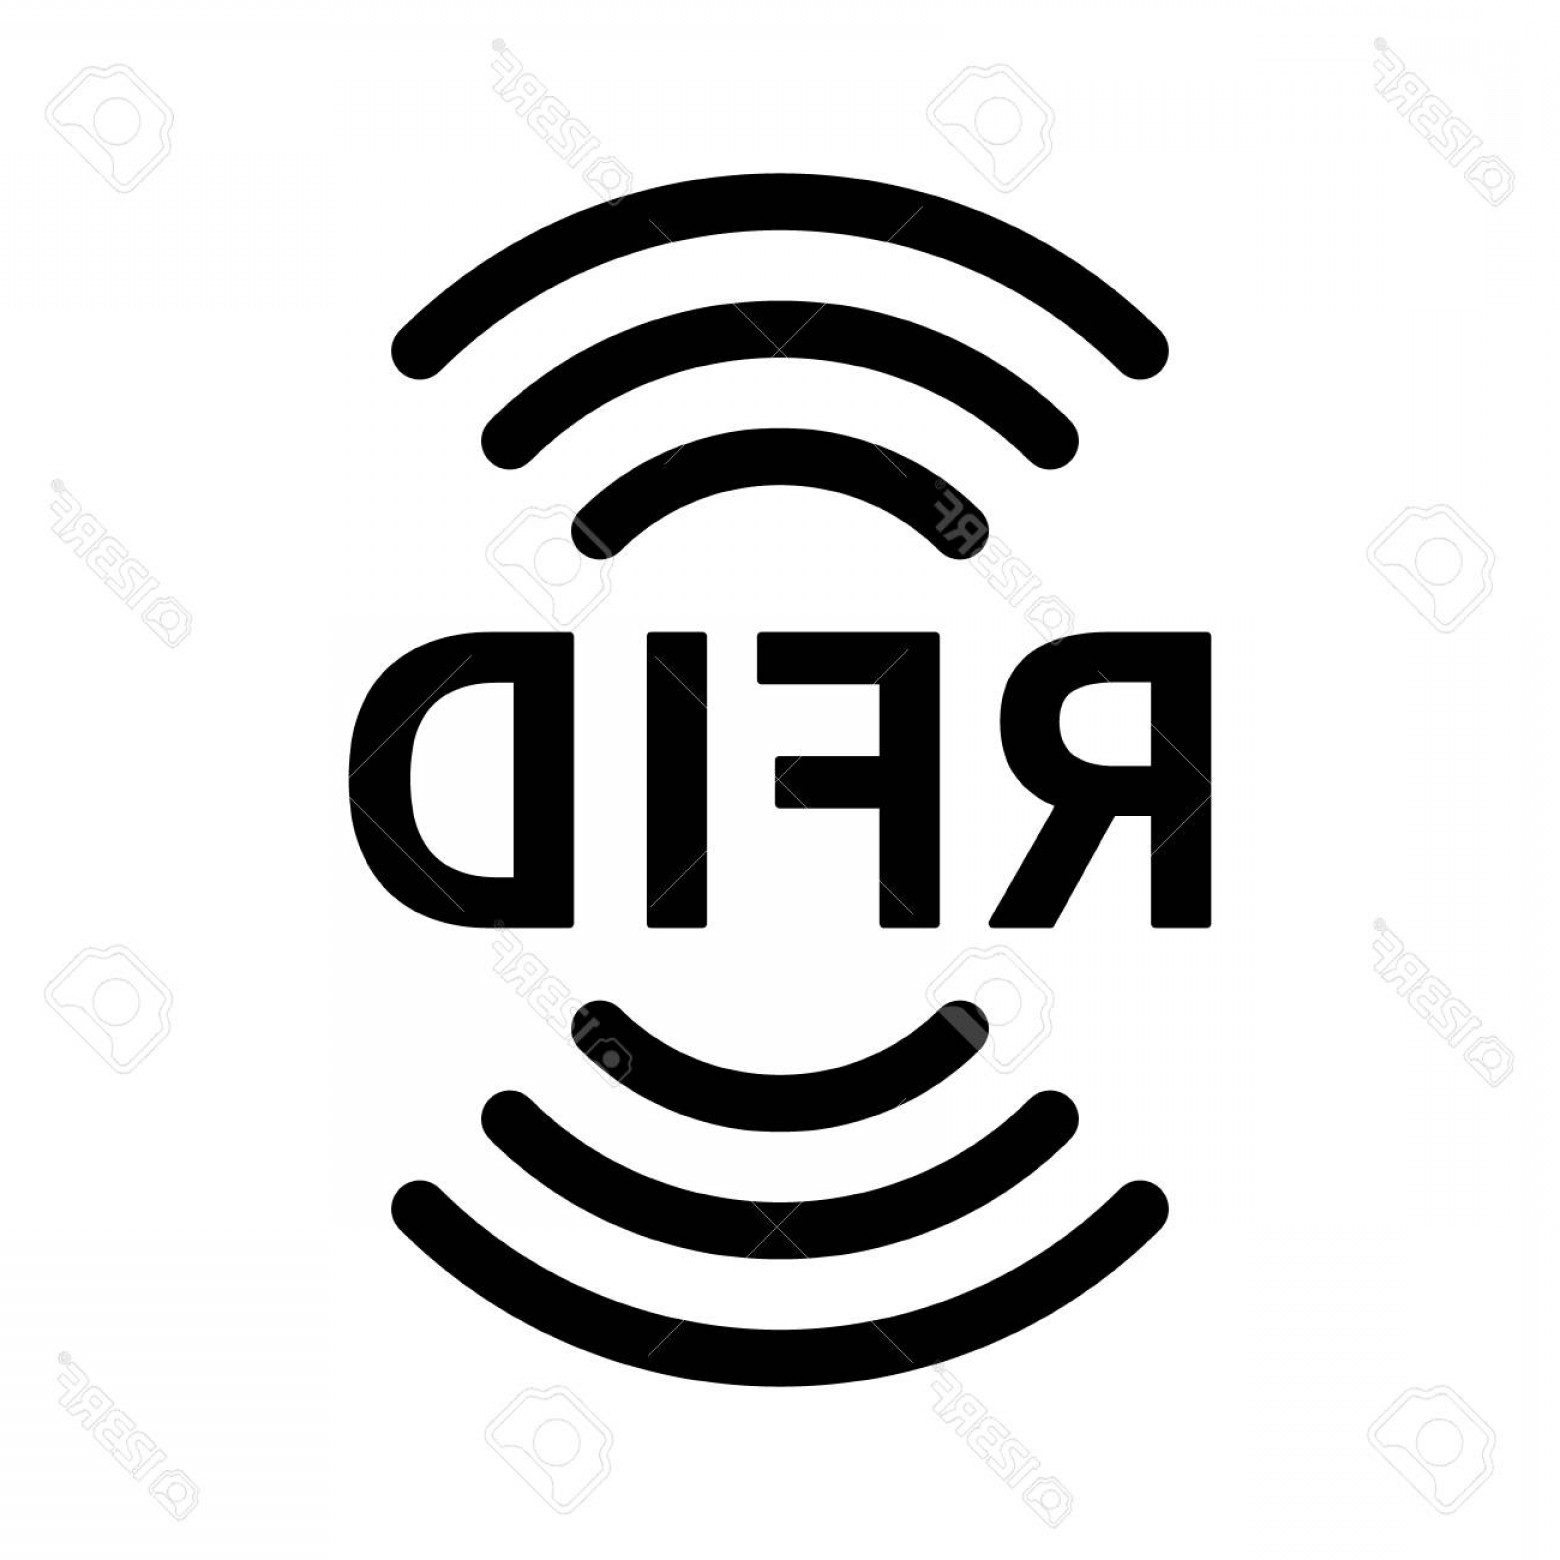 Radio Frequency Vector: Photostock Vector Rfid Or Radio Frequency Identification With Vertical Radio Waves Line Art Vector Icon For Apps And W